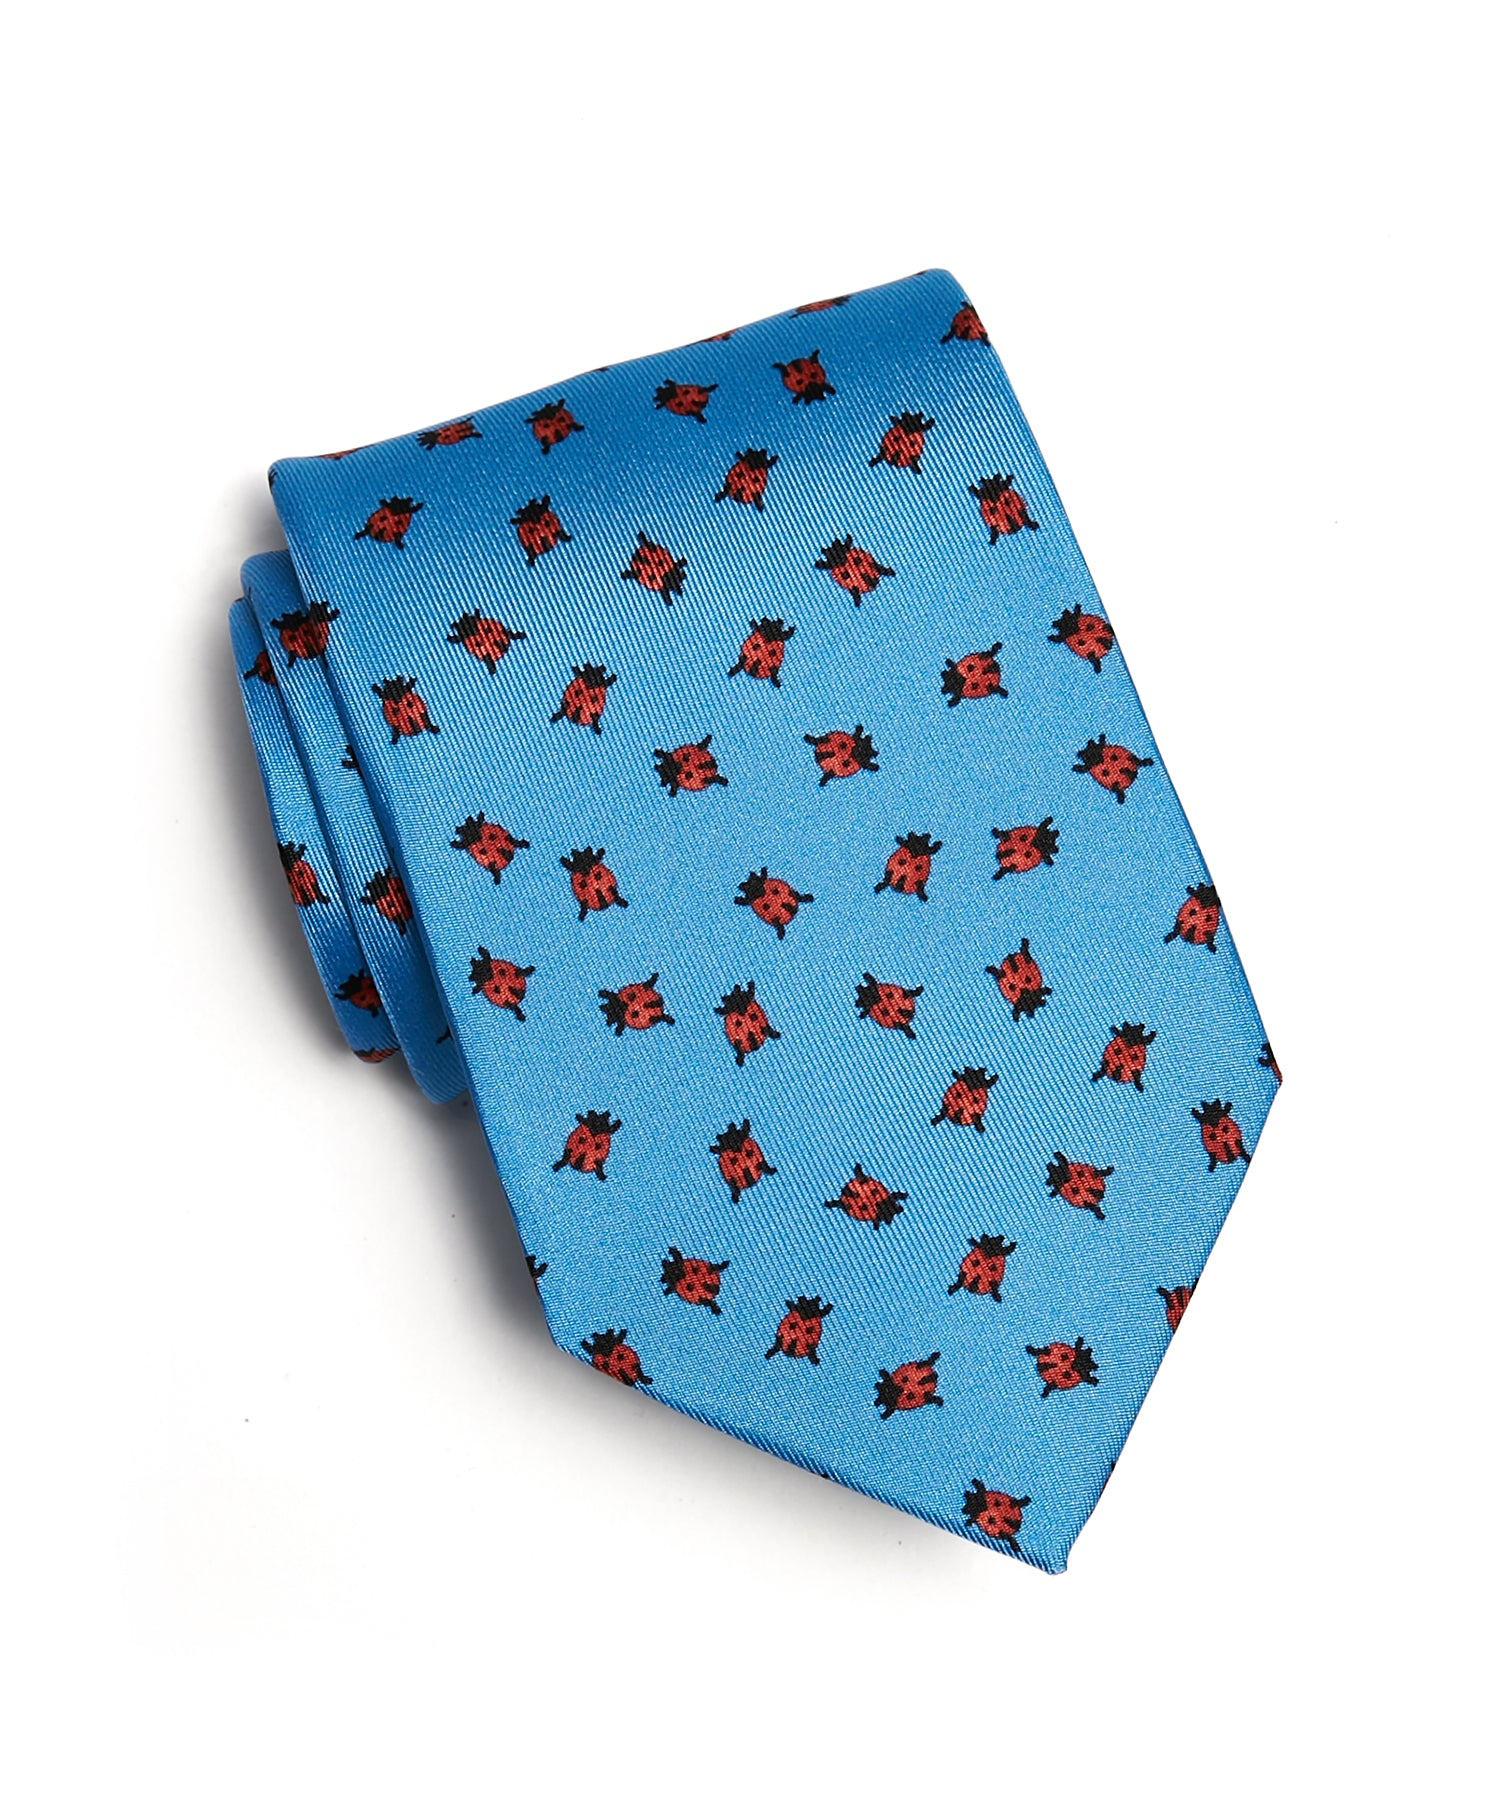 Drakes Ladybug Print Silk Tie in Light Blue